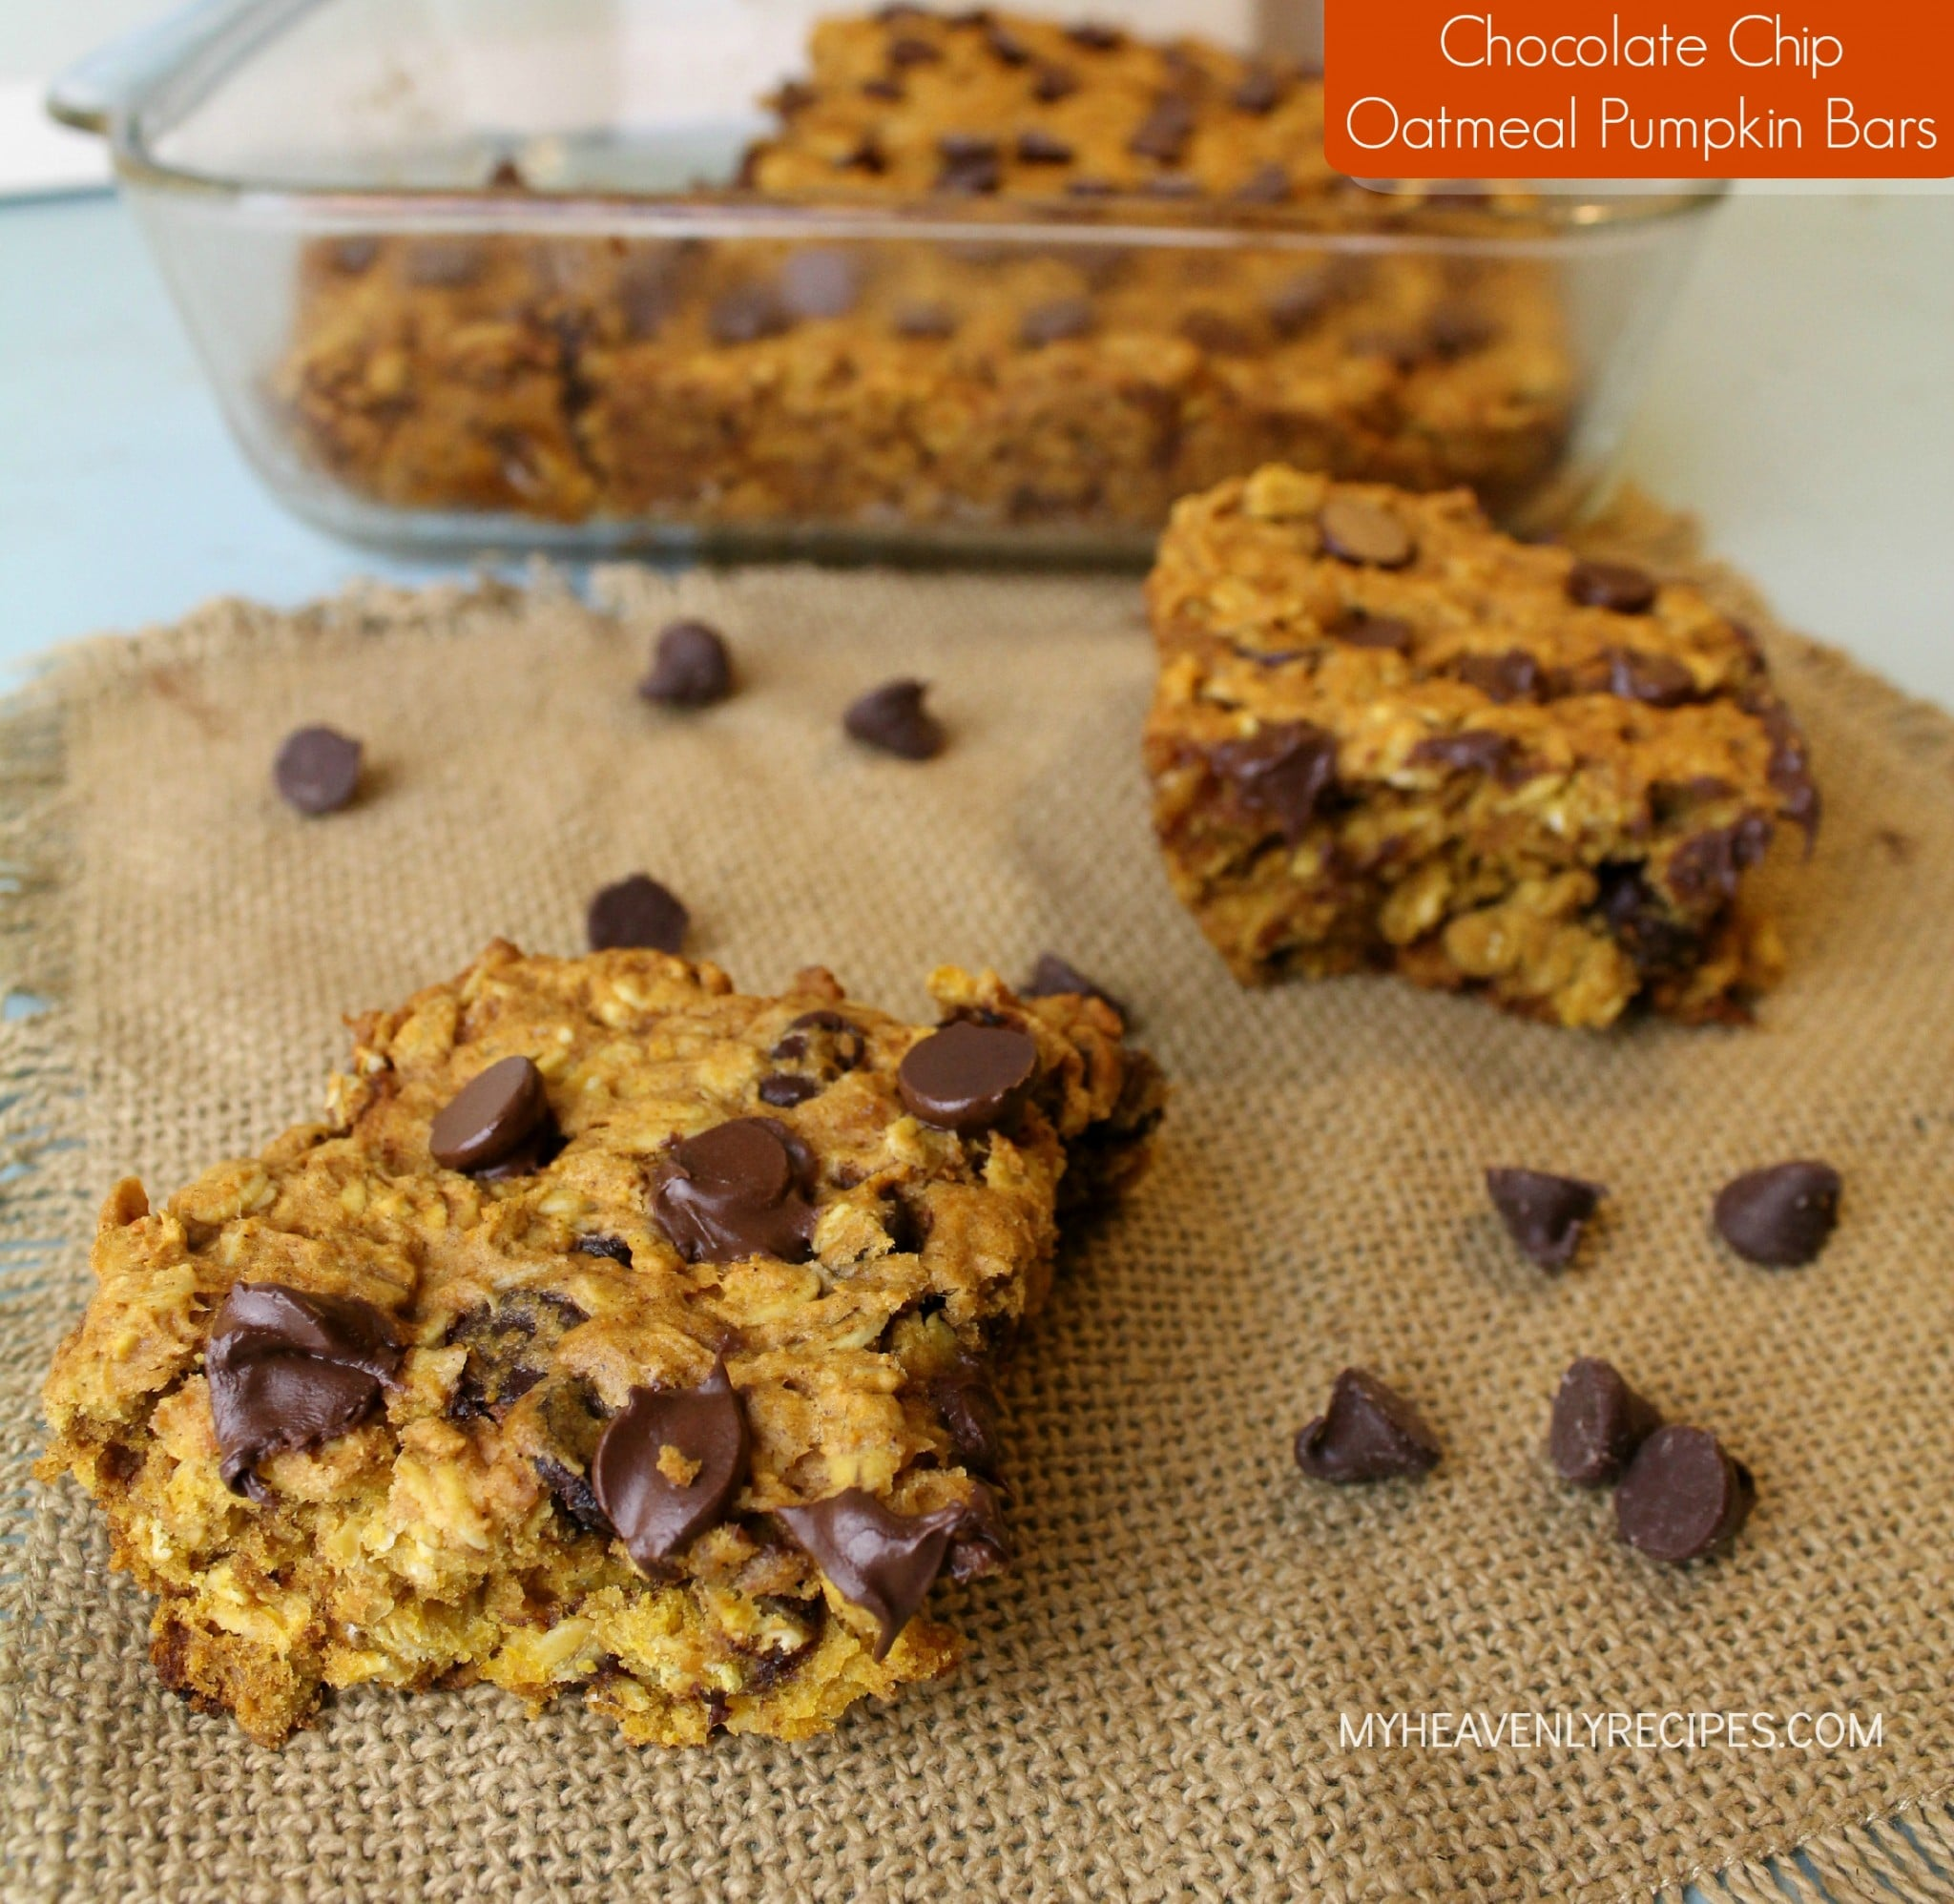 Chocolate Chip Oatmeal Pumpkin Bars